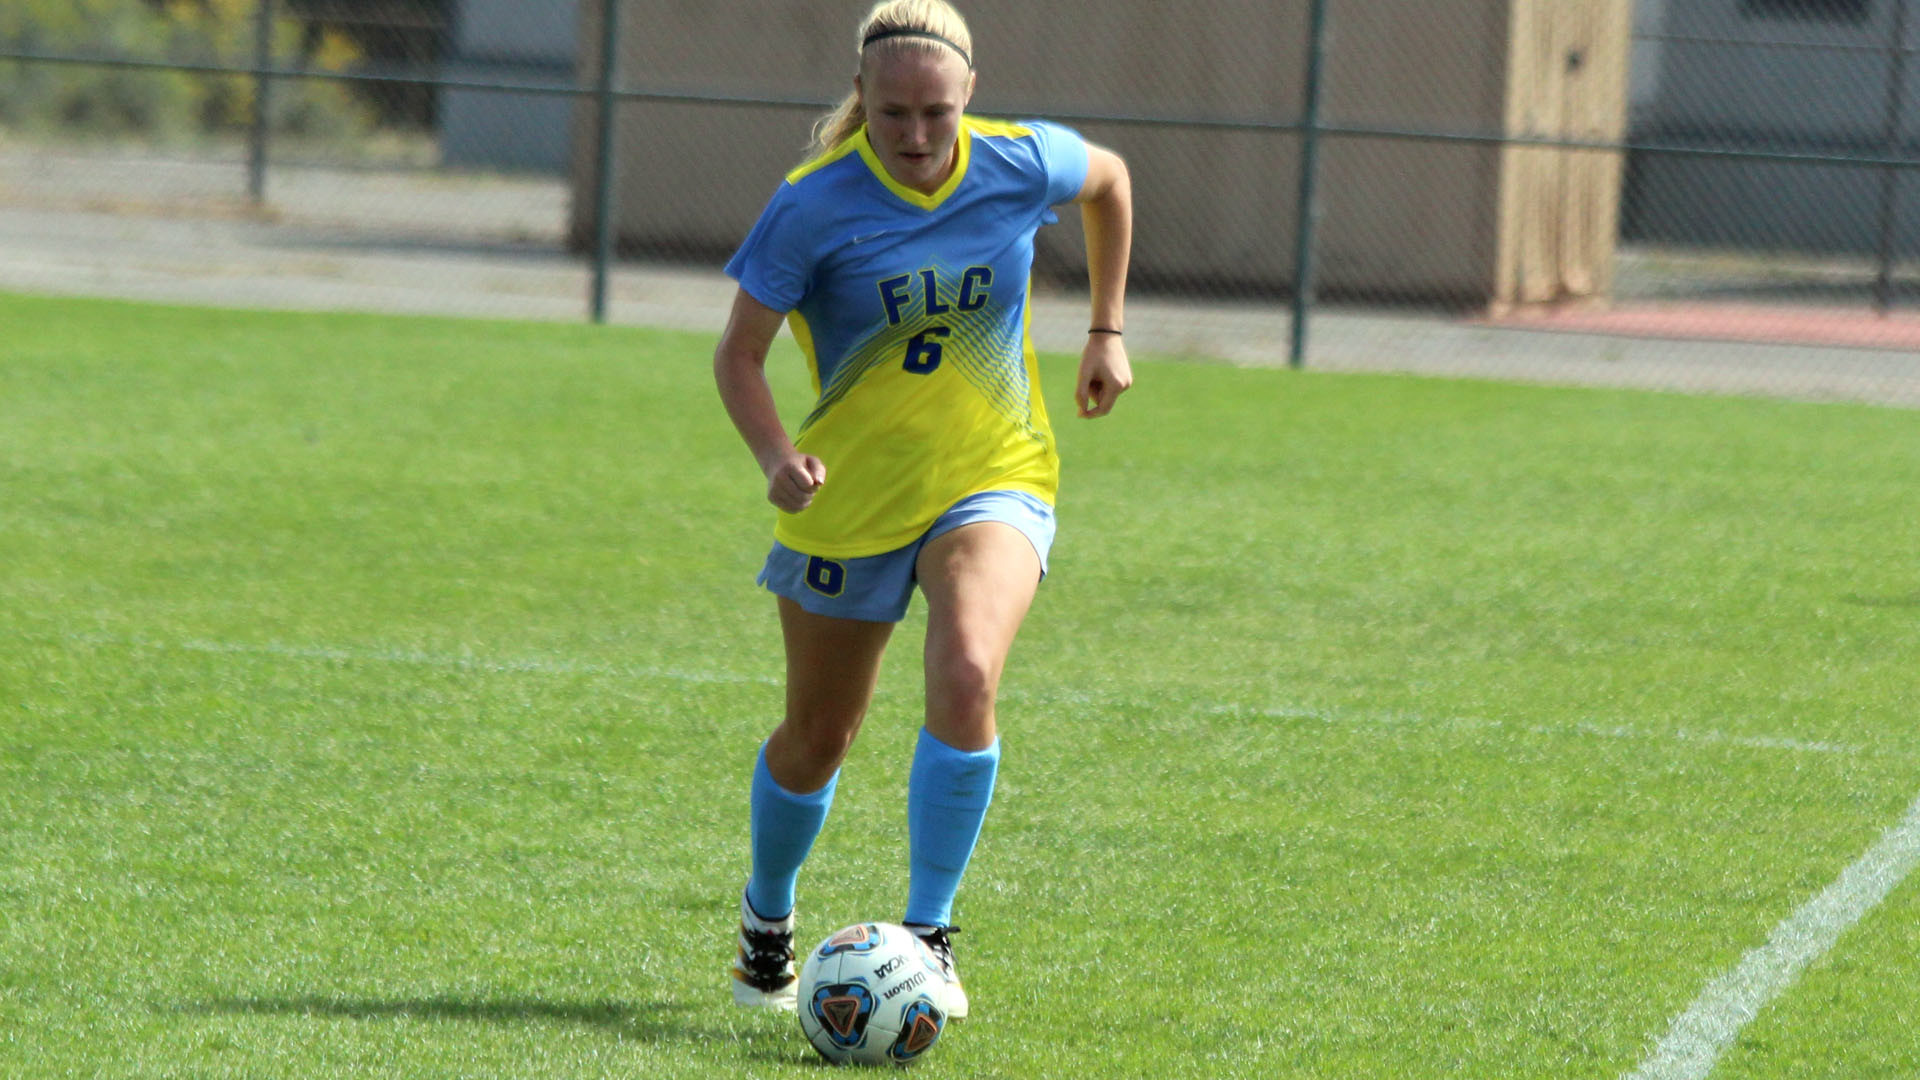 promo code e479a 9cc63 Fort Lewis College Skyhawks Women's Soccer ID Camp